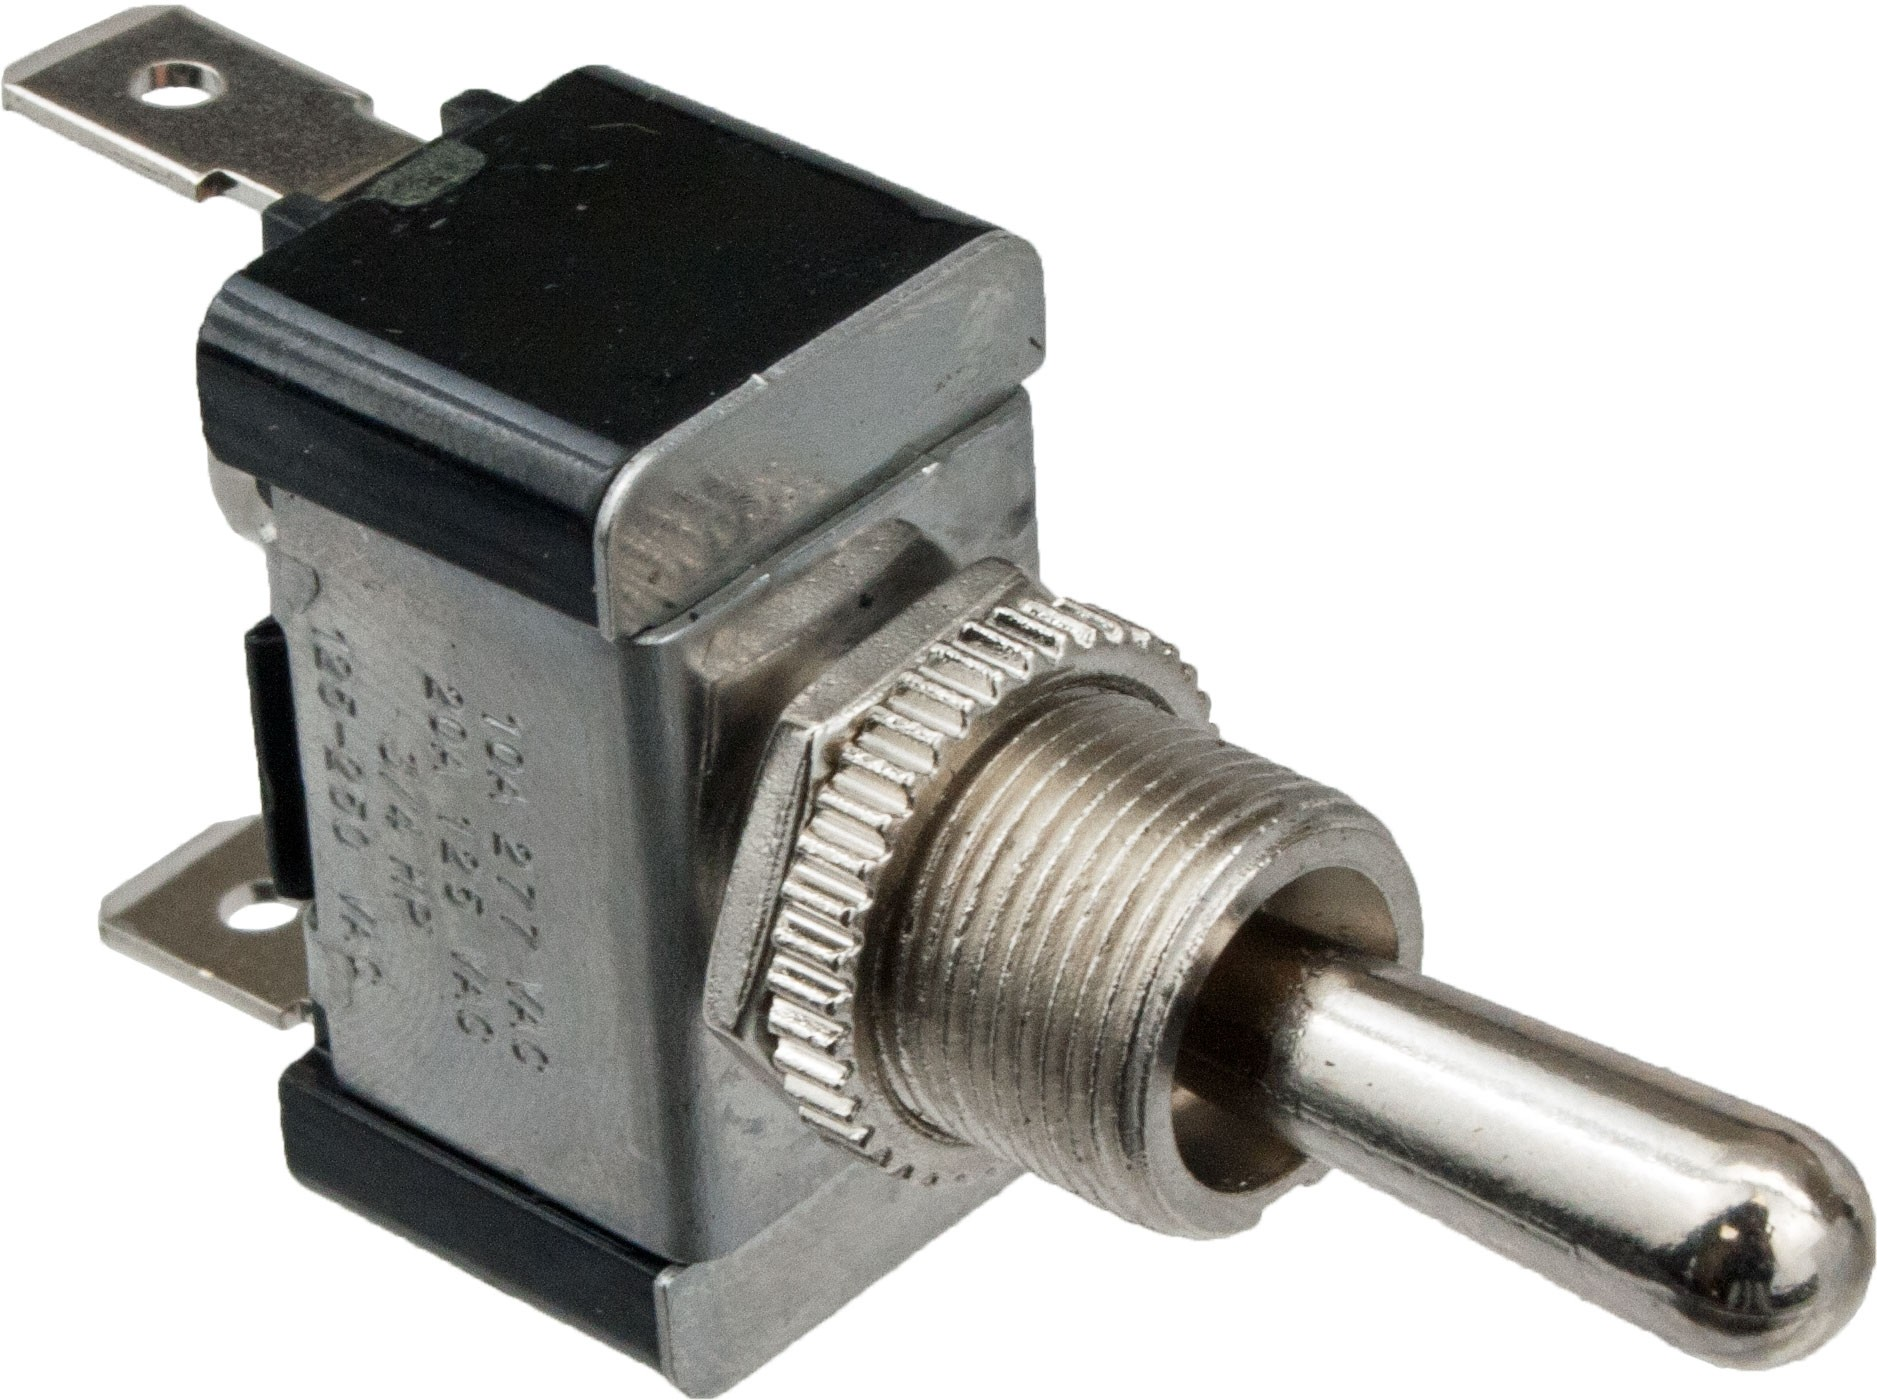 3 Blade Terminal Toggle Switch Momentary Mom On Off Spdt 35 Amp Wiring Diagram For 765062